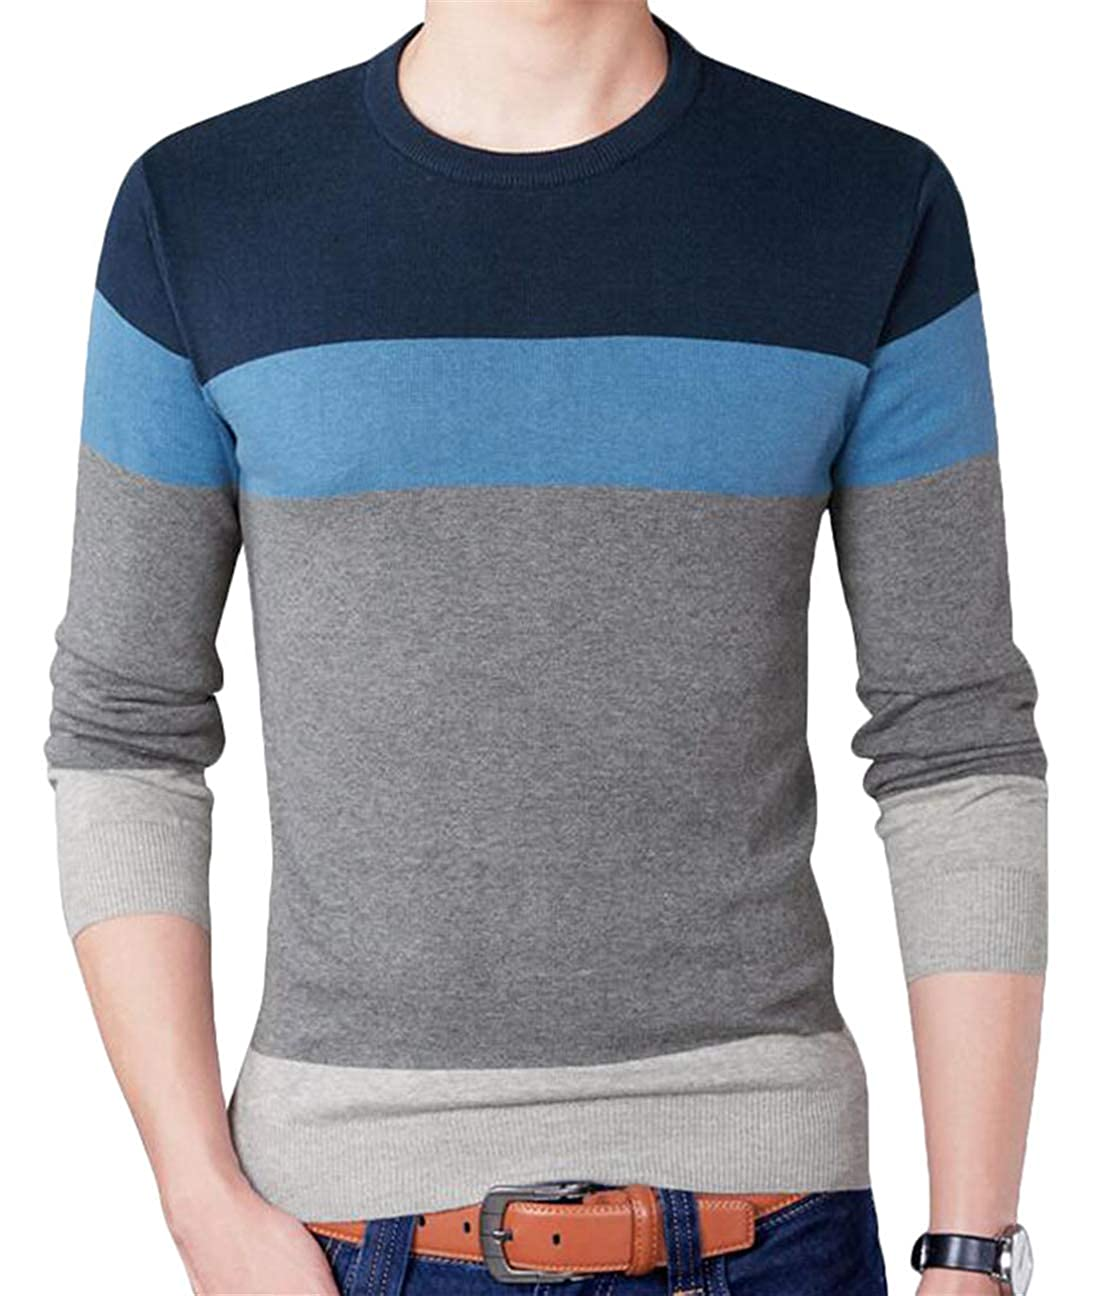 YYear Mens Knitted Color Block Casual Round Neck Slim Cotton Pullover Sweater